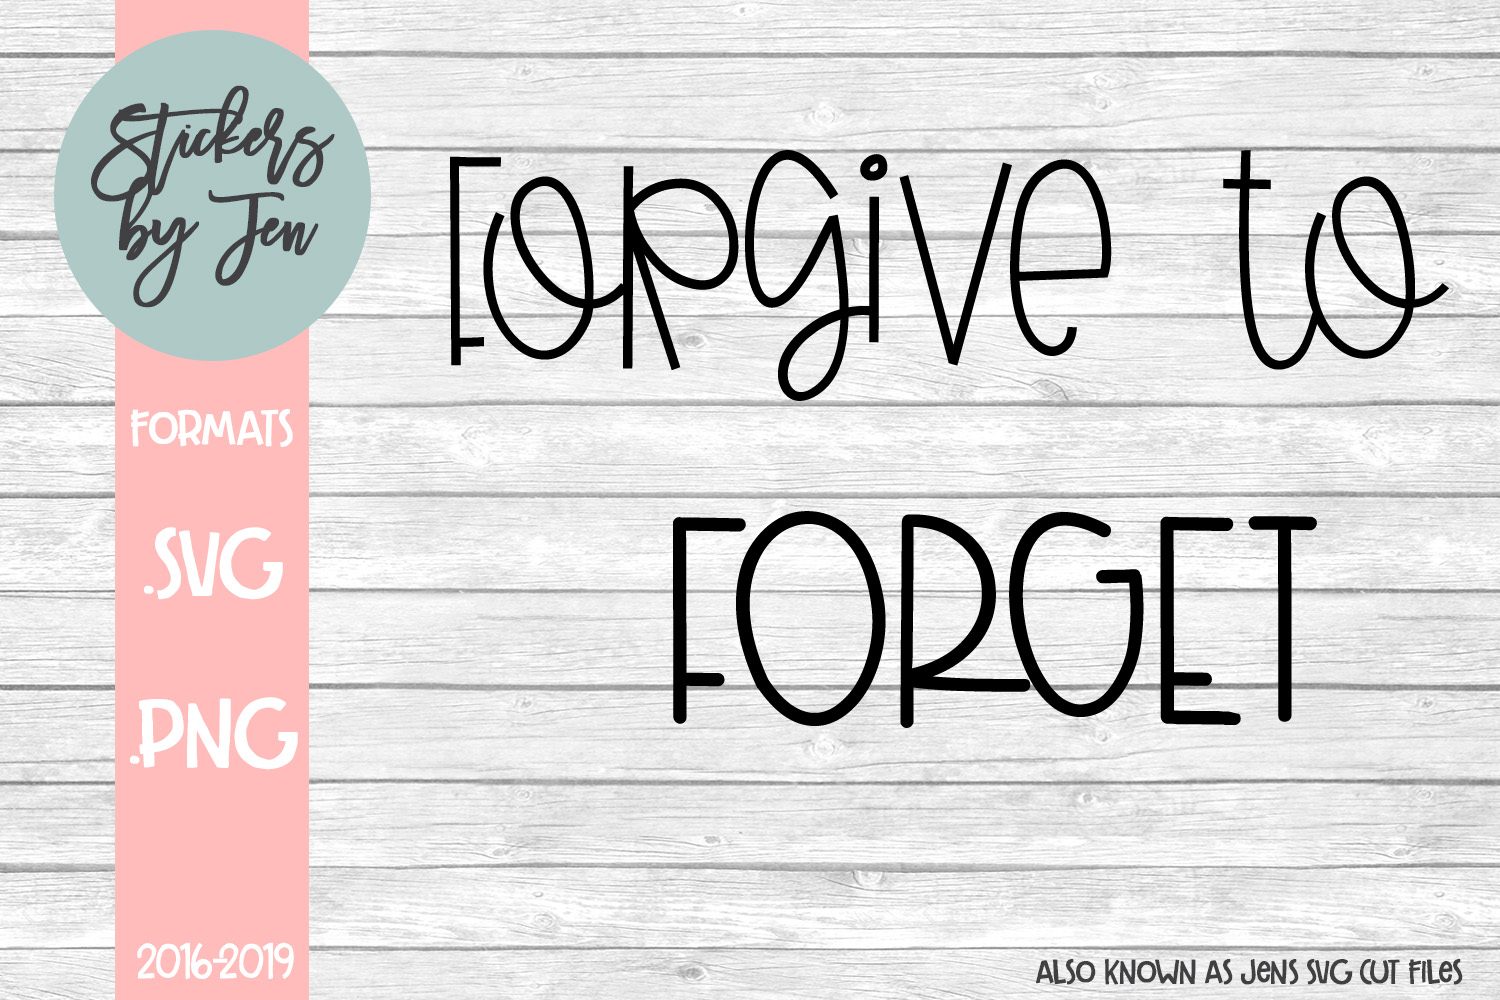 Forgive To Forget Svg Graphic By Jens Svg Cut Files Creative